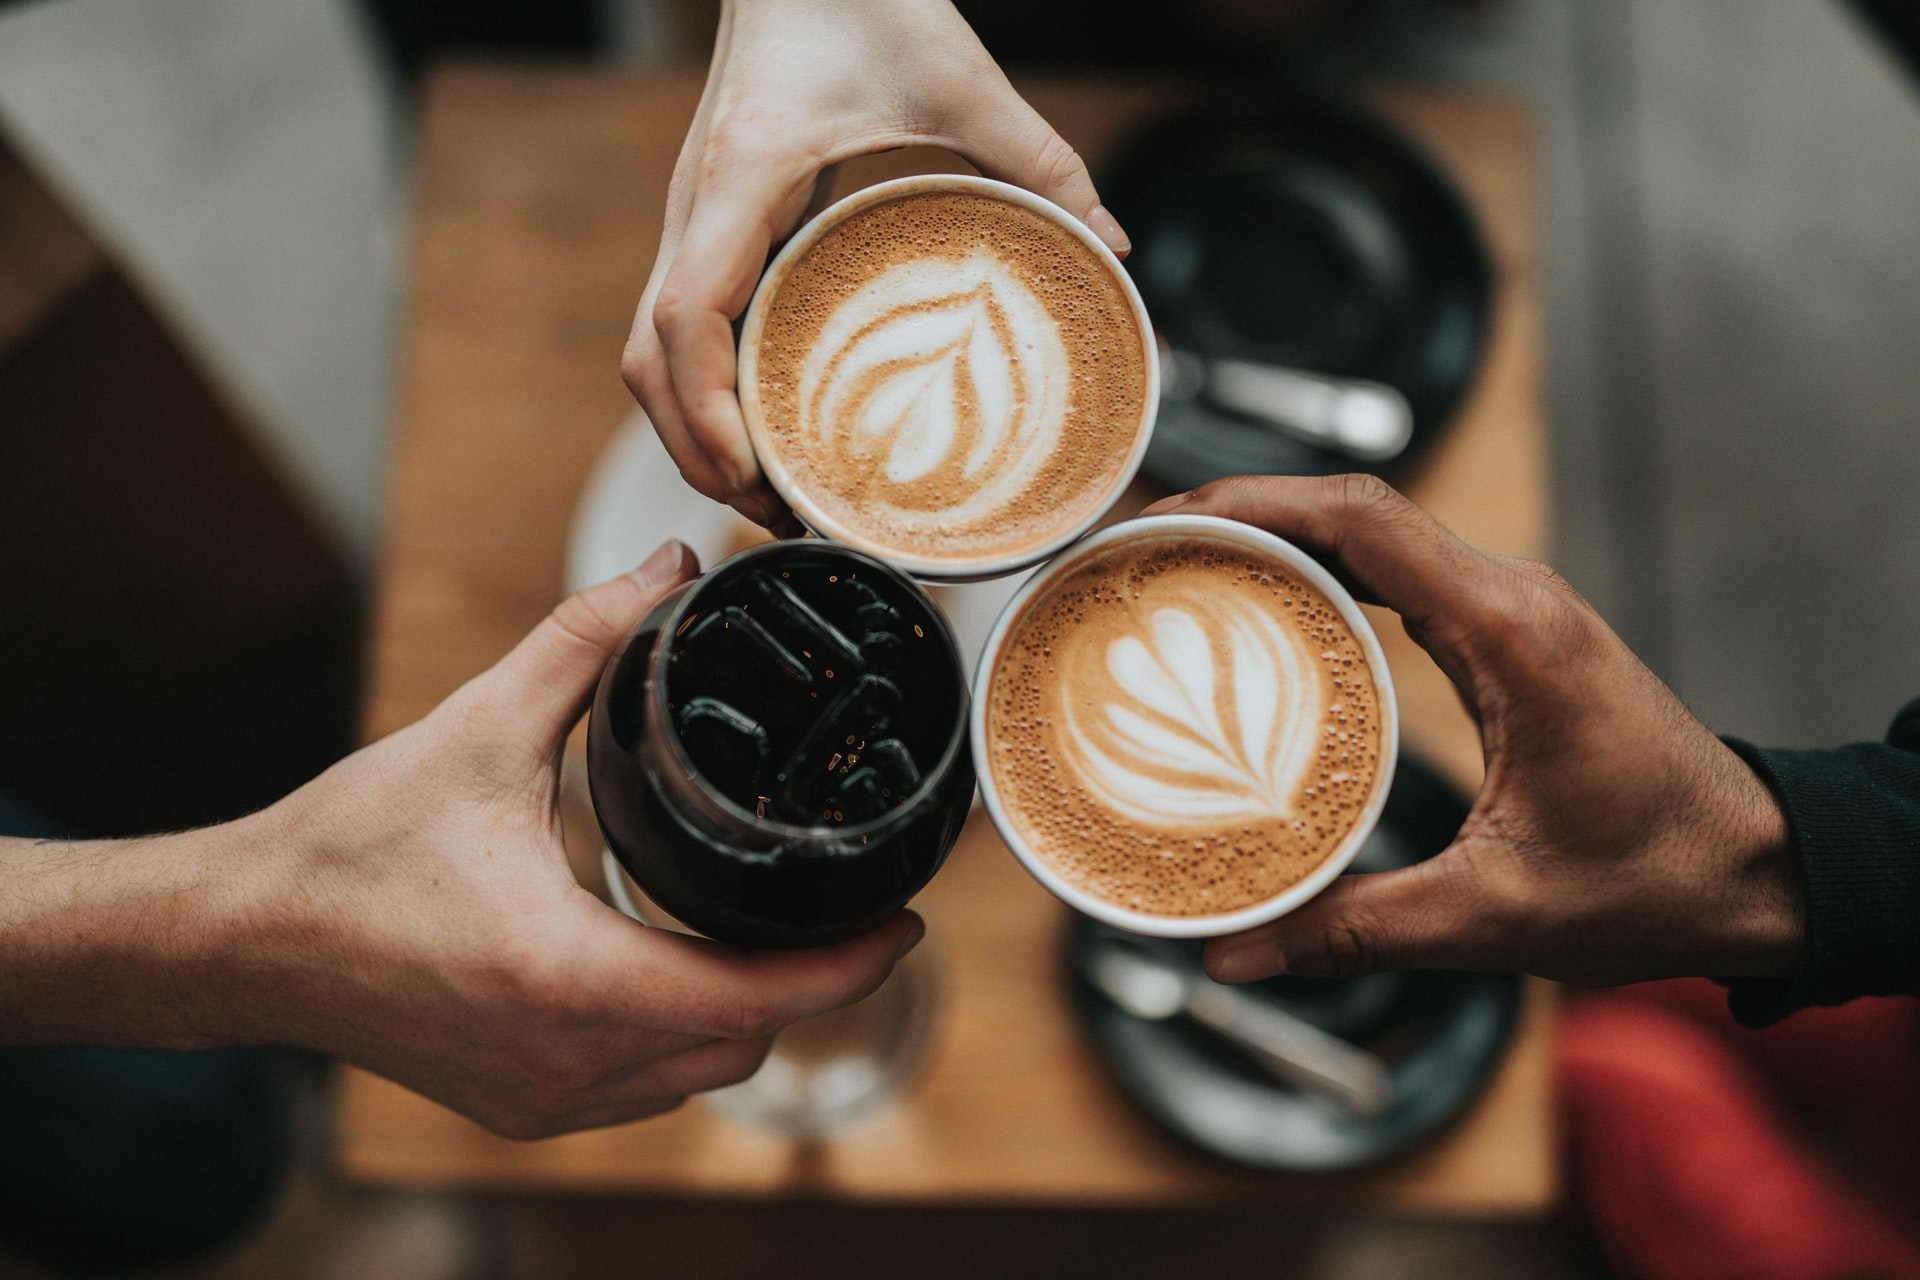 Sip Your Morning Perk-Me-Up at Thinking Cup